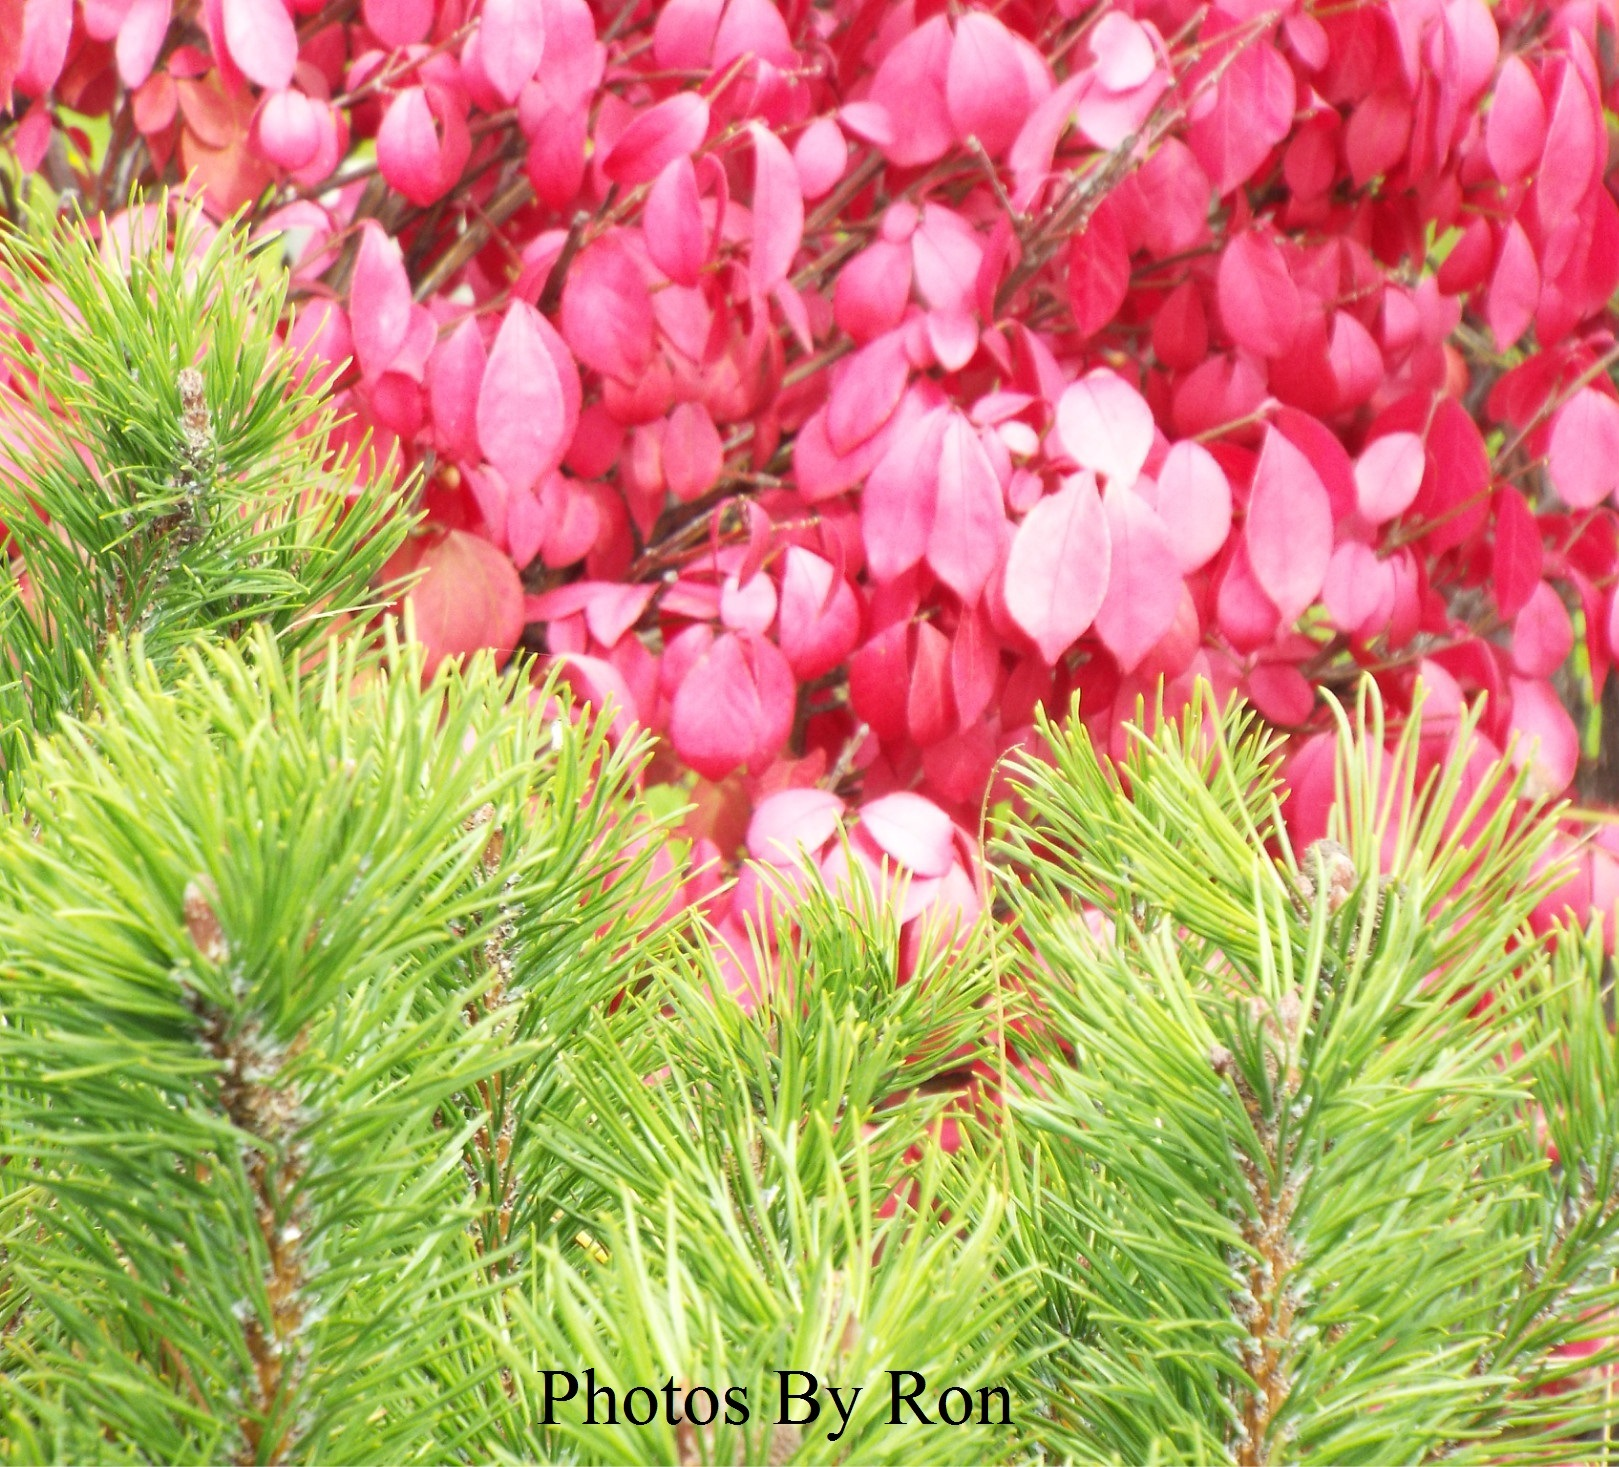 """""""Pink & Green Contrasts"""" by Ron Berkley"""